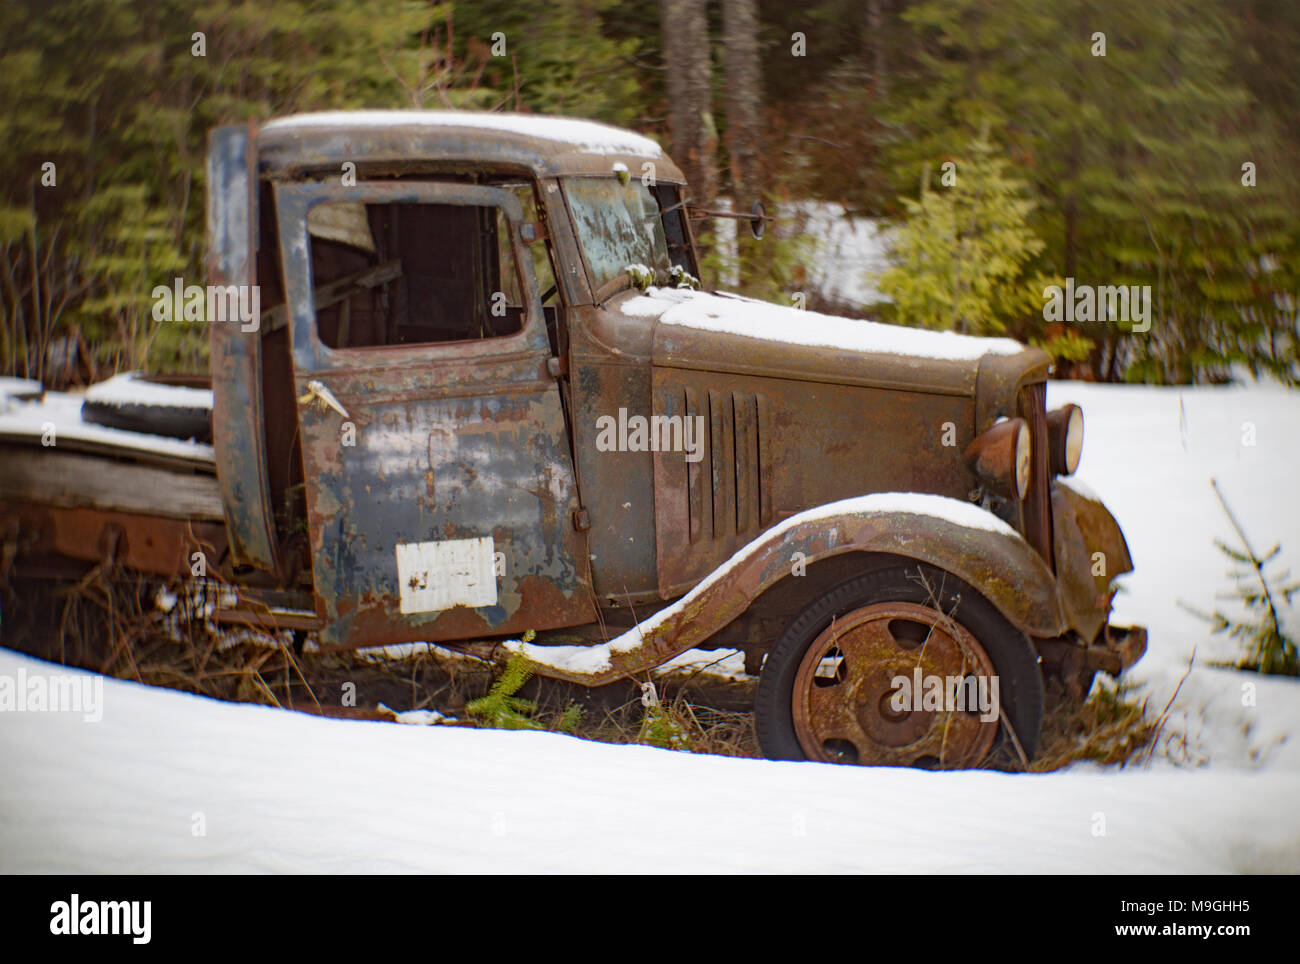 an-old-rusty-1932-chevy-1-12-ton-truck-n